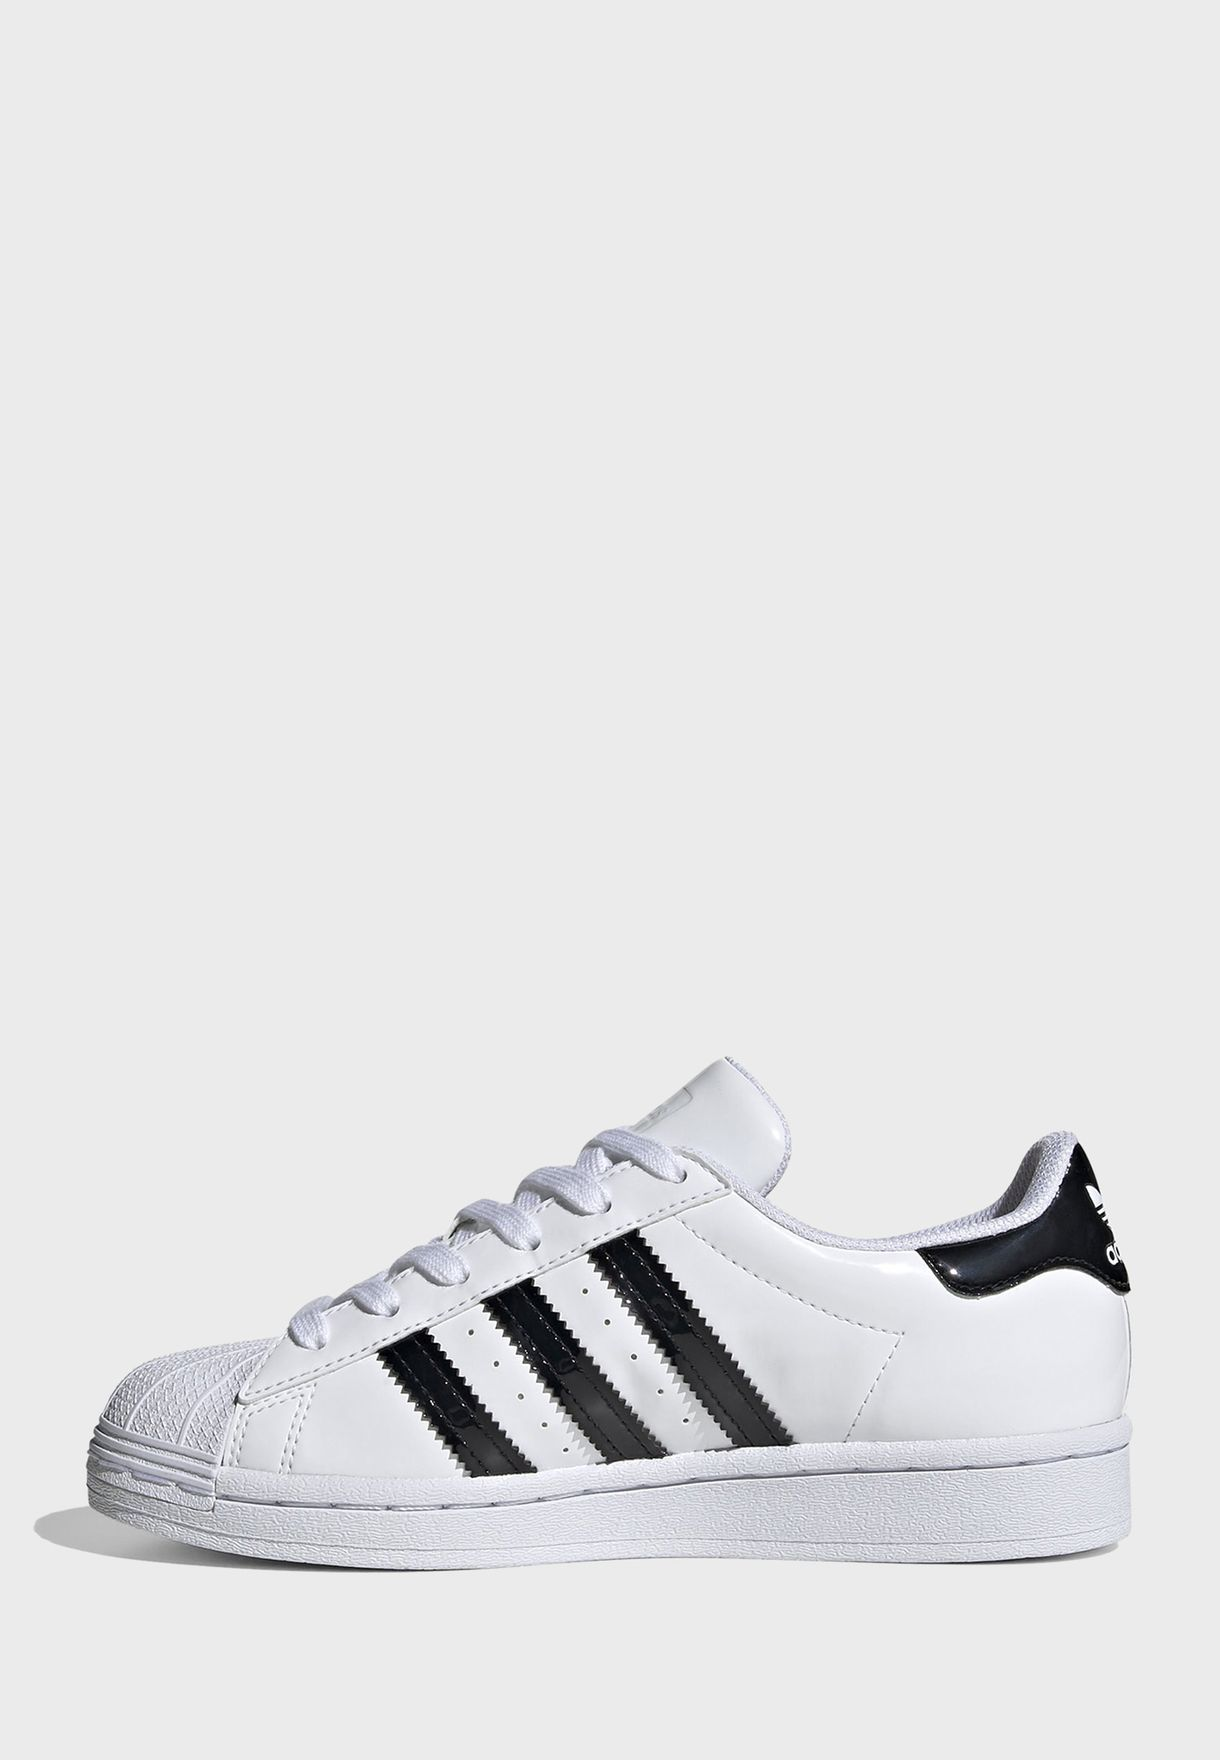 Superstar Casual Unisex Sneakers Shoes